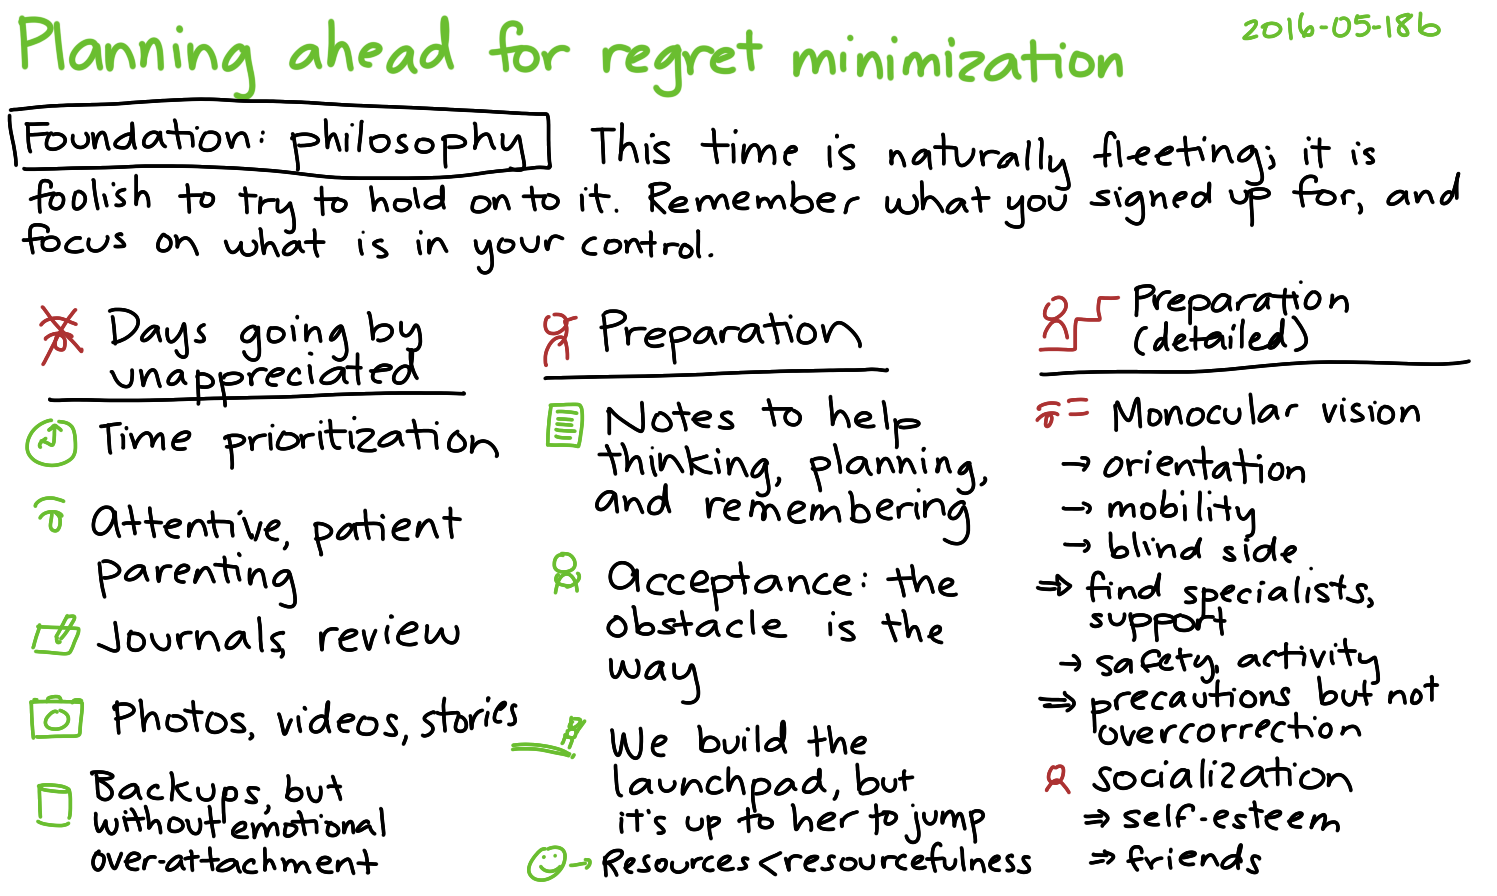 2016-05-18b Planning ahead for regret minimization -- index card #looking-ahead #parenting.png